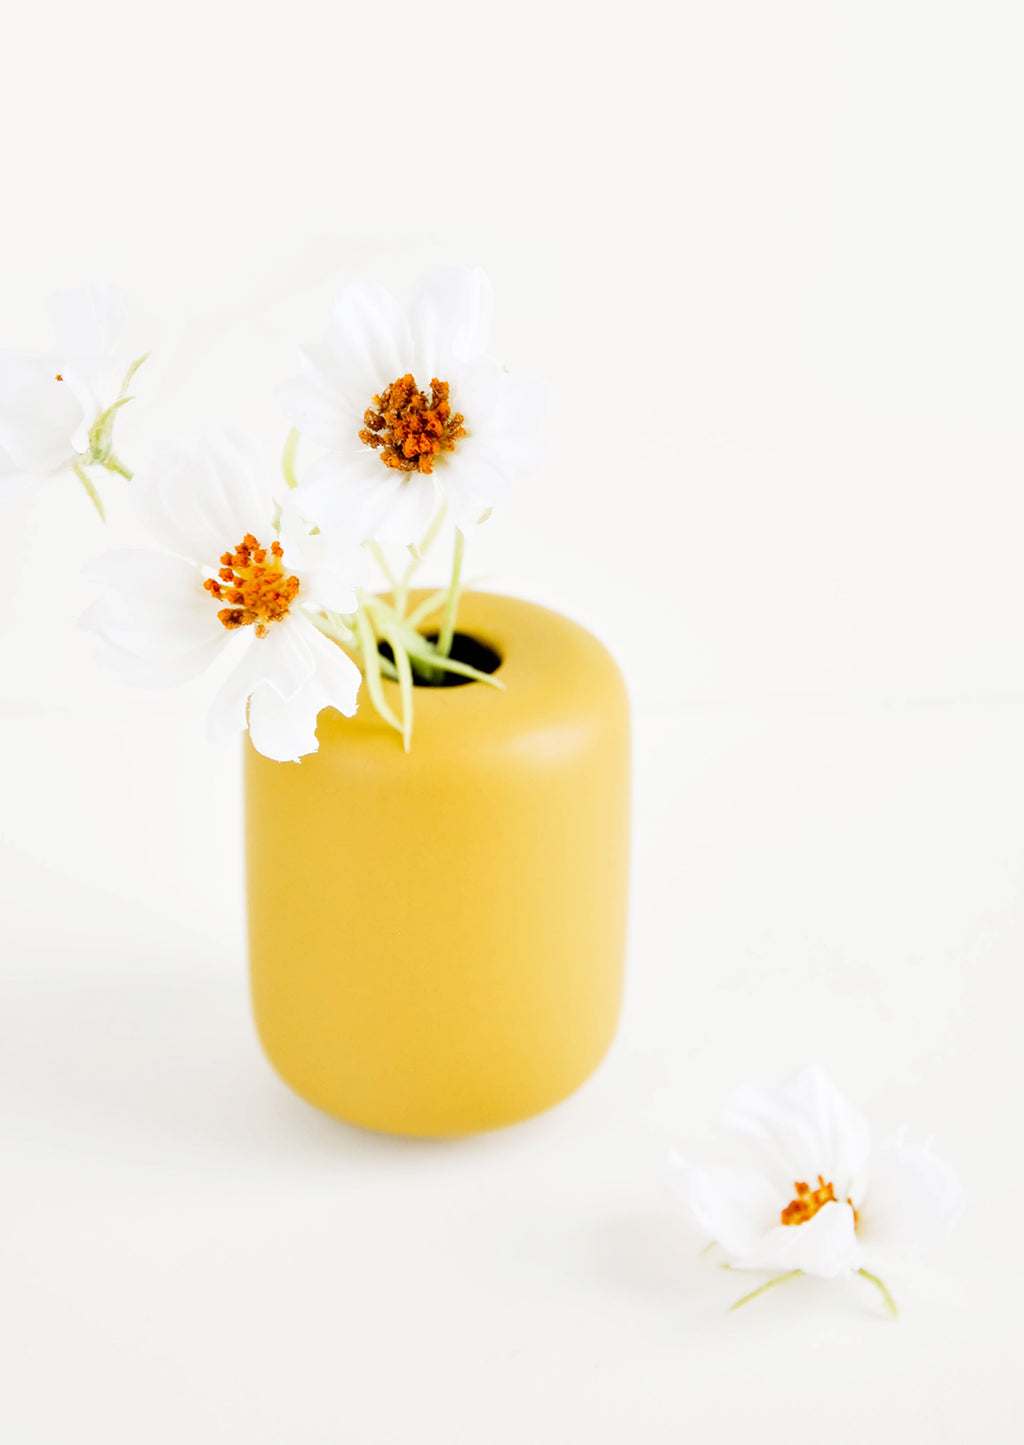 2: Small, tubular shape ceramic bud vase in matte mustard, shown with flowers